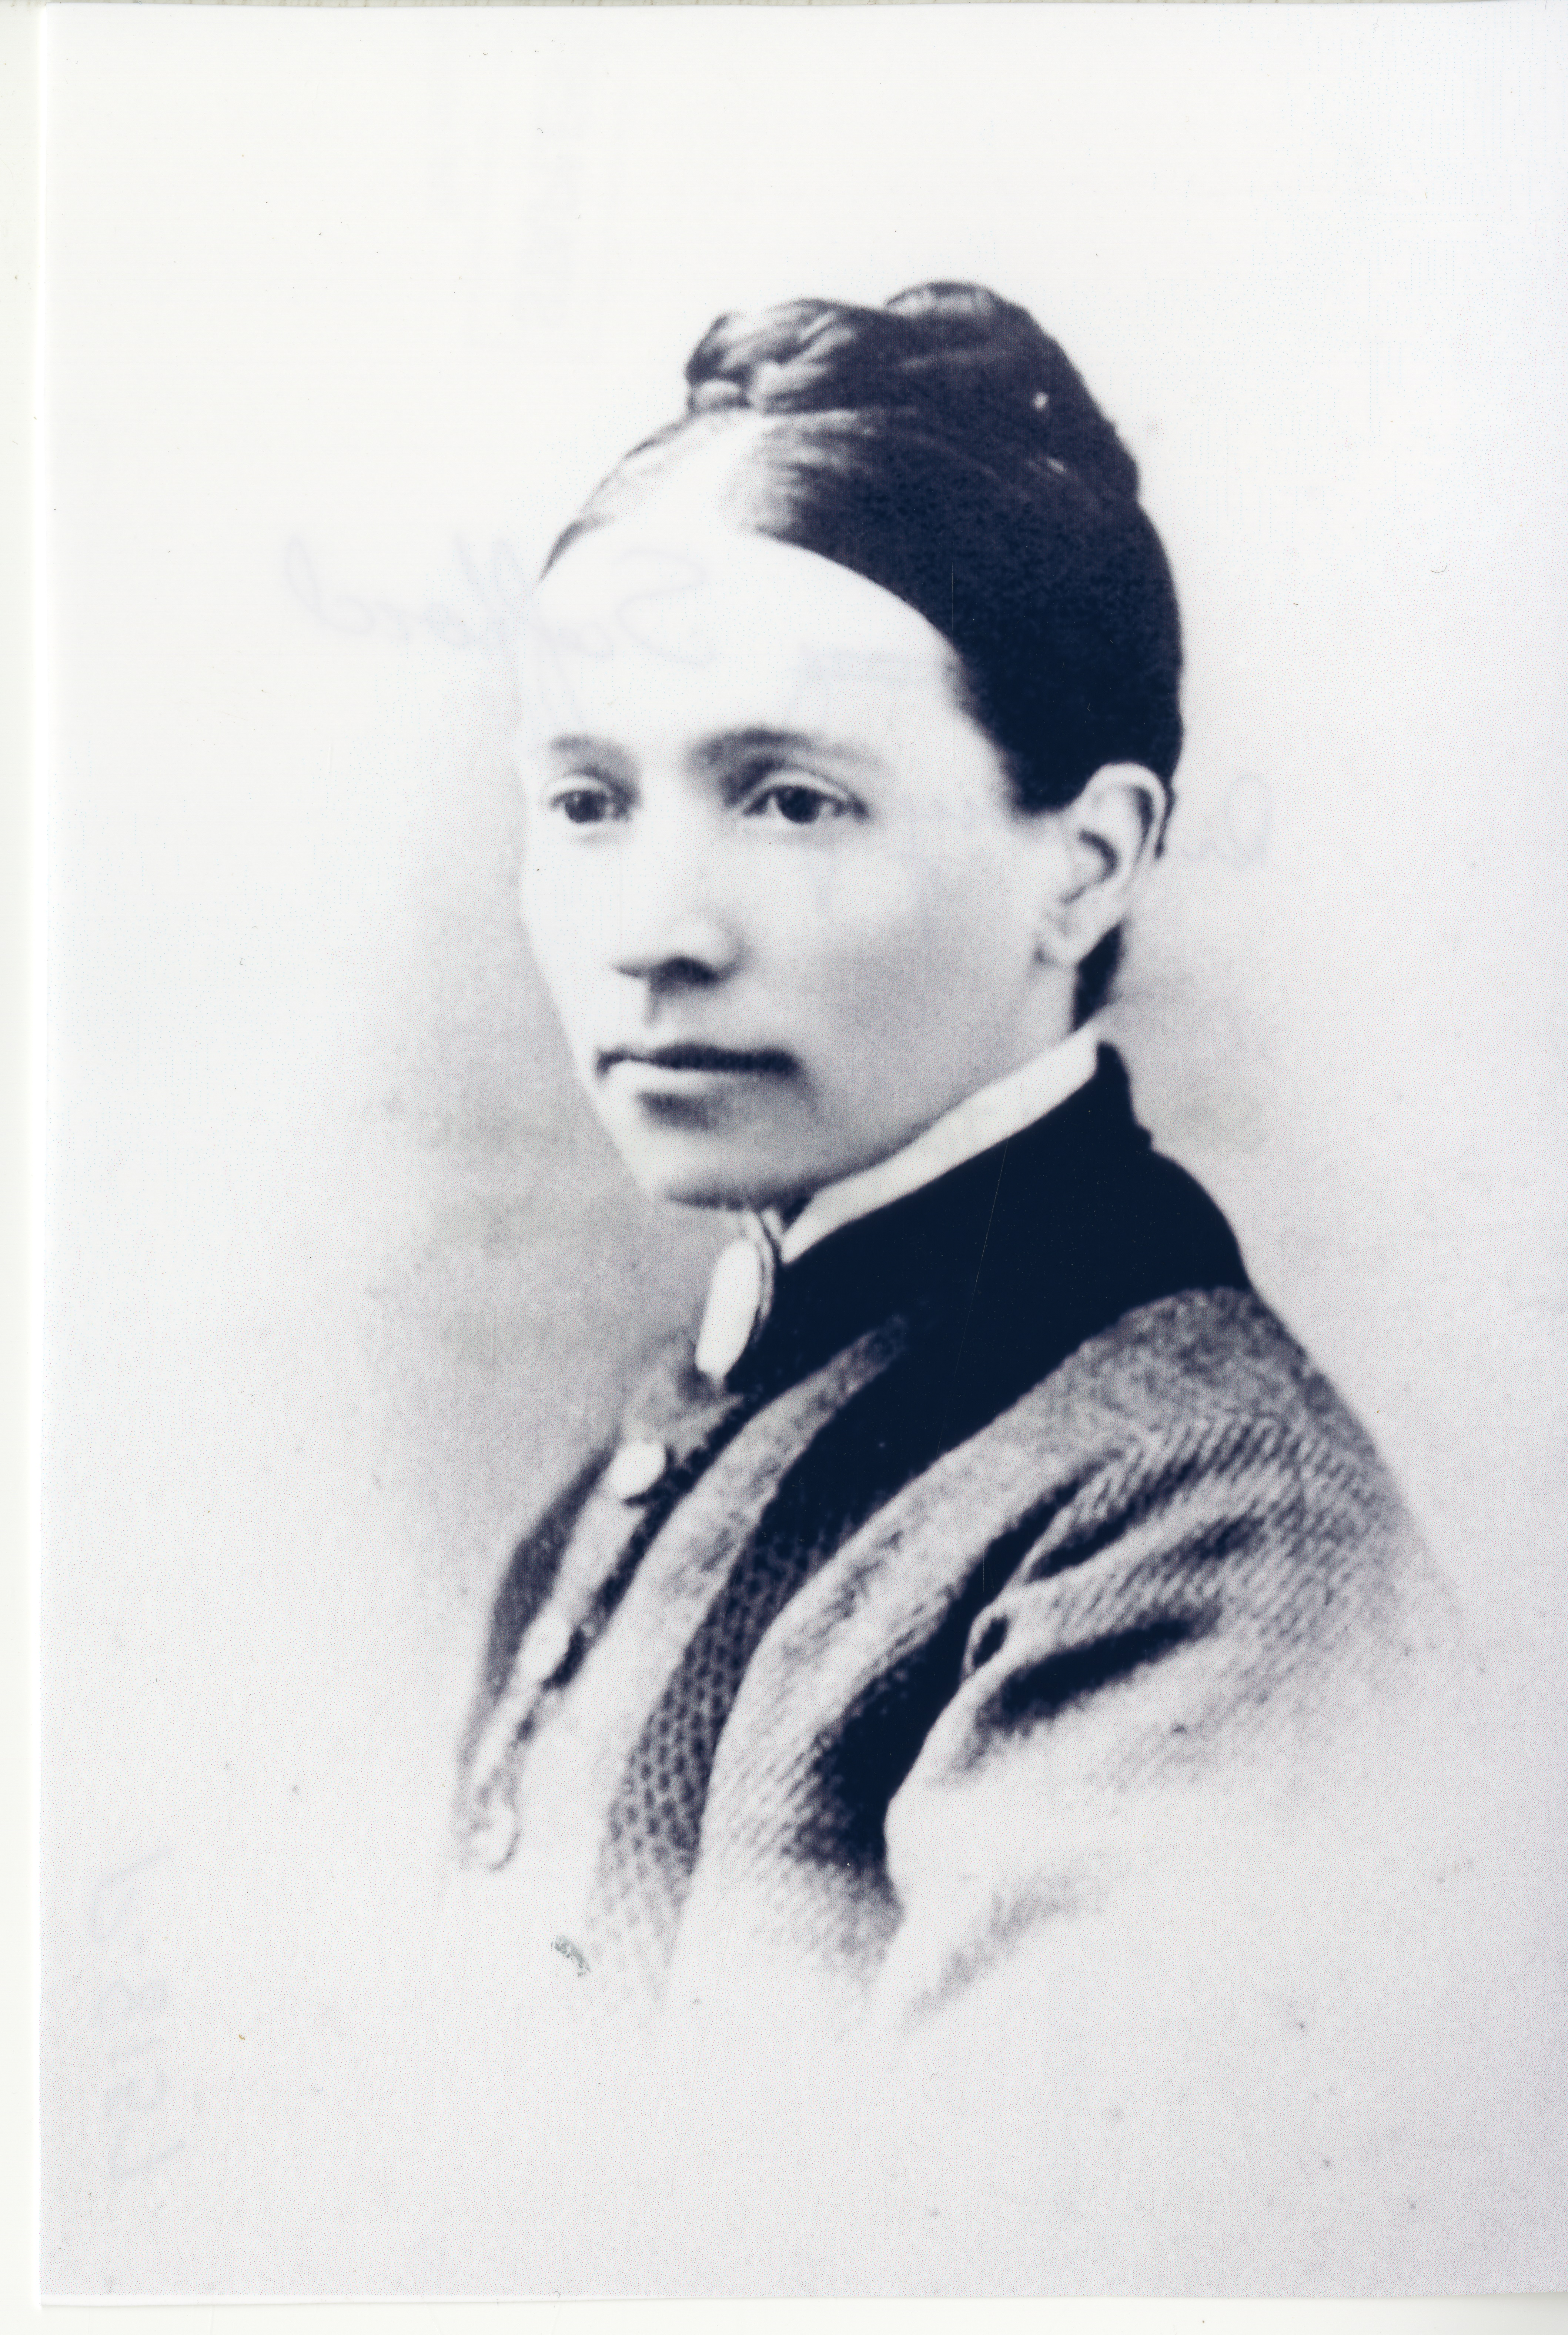 Dr. Mary Safford, circa 1880. Dr. Safford served as a nurse in the Civil War, and later became a physician. When she moved to Tarpon Springs to live with her brother, Anson Safford, in 1880, she became the first physician in Tarpon and the first academically trained physician in Florida.